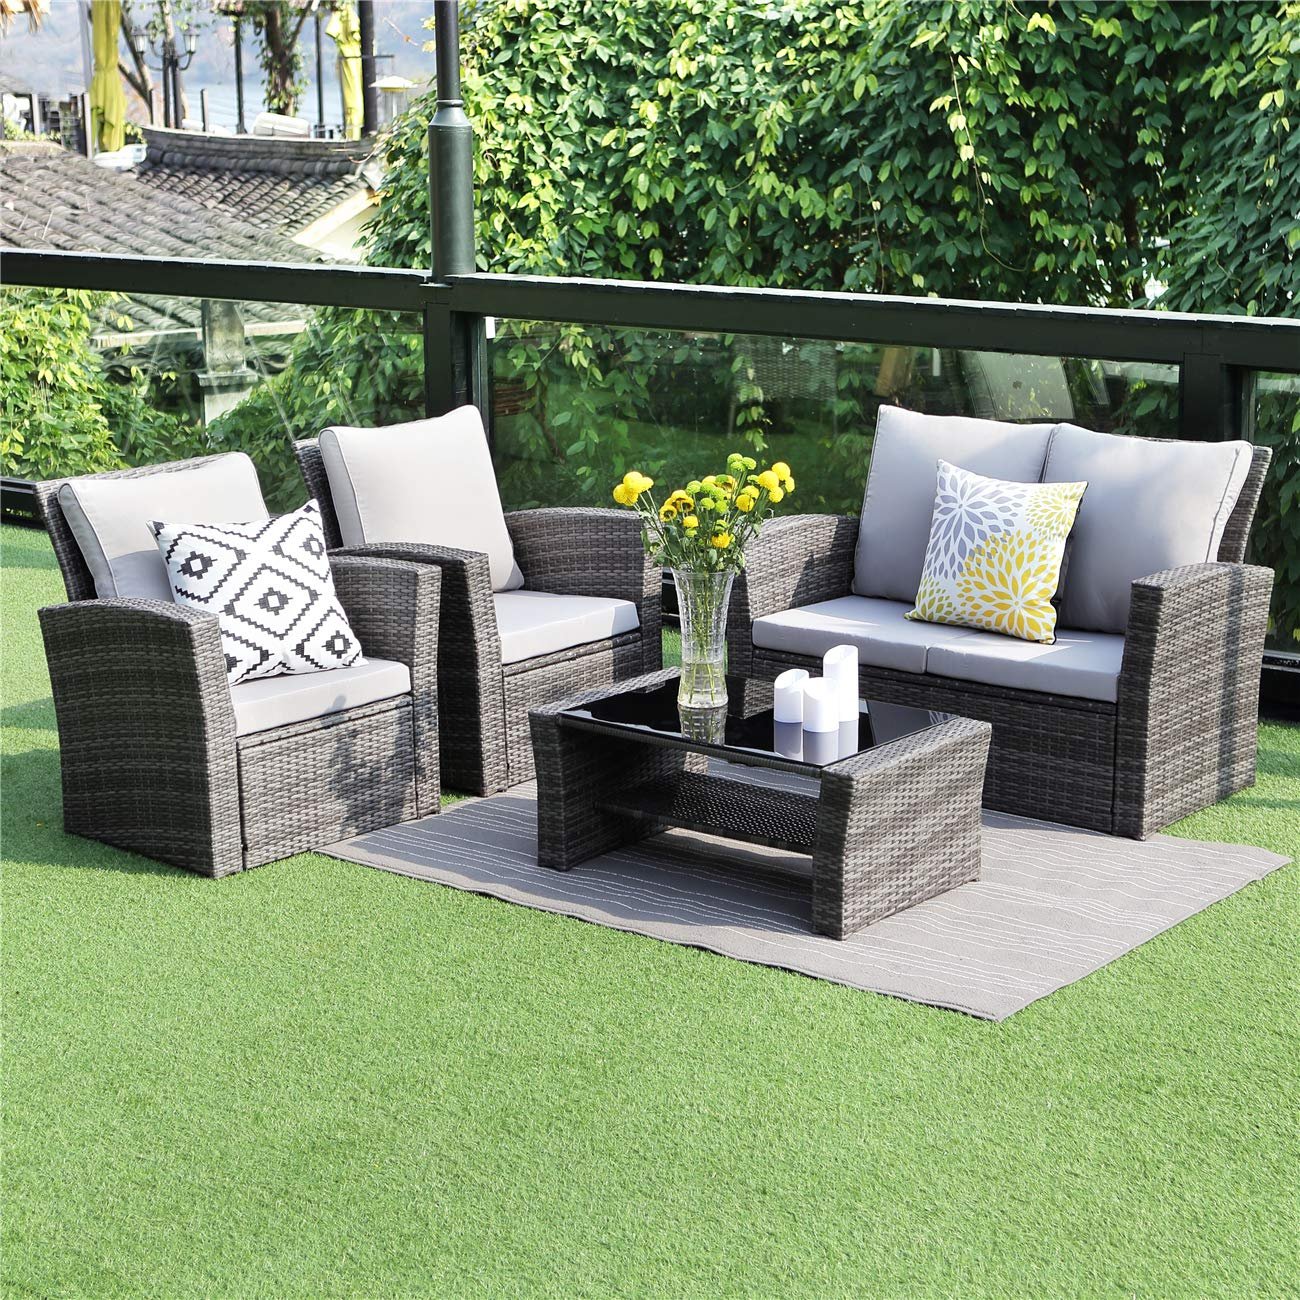 Wisteria Lane 5 Piece Outdoor Patio Furniture Sets